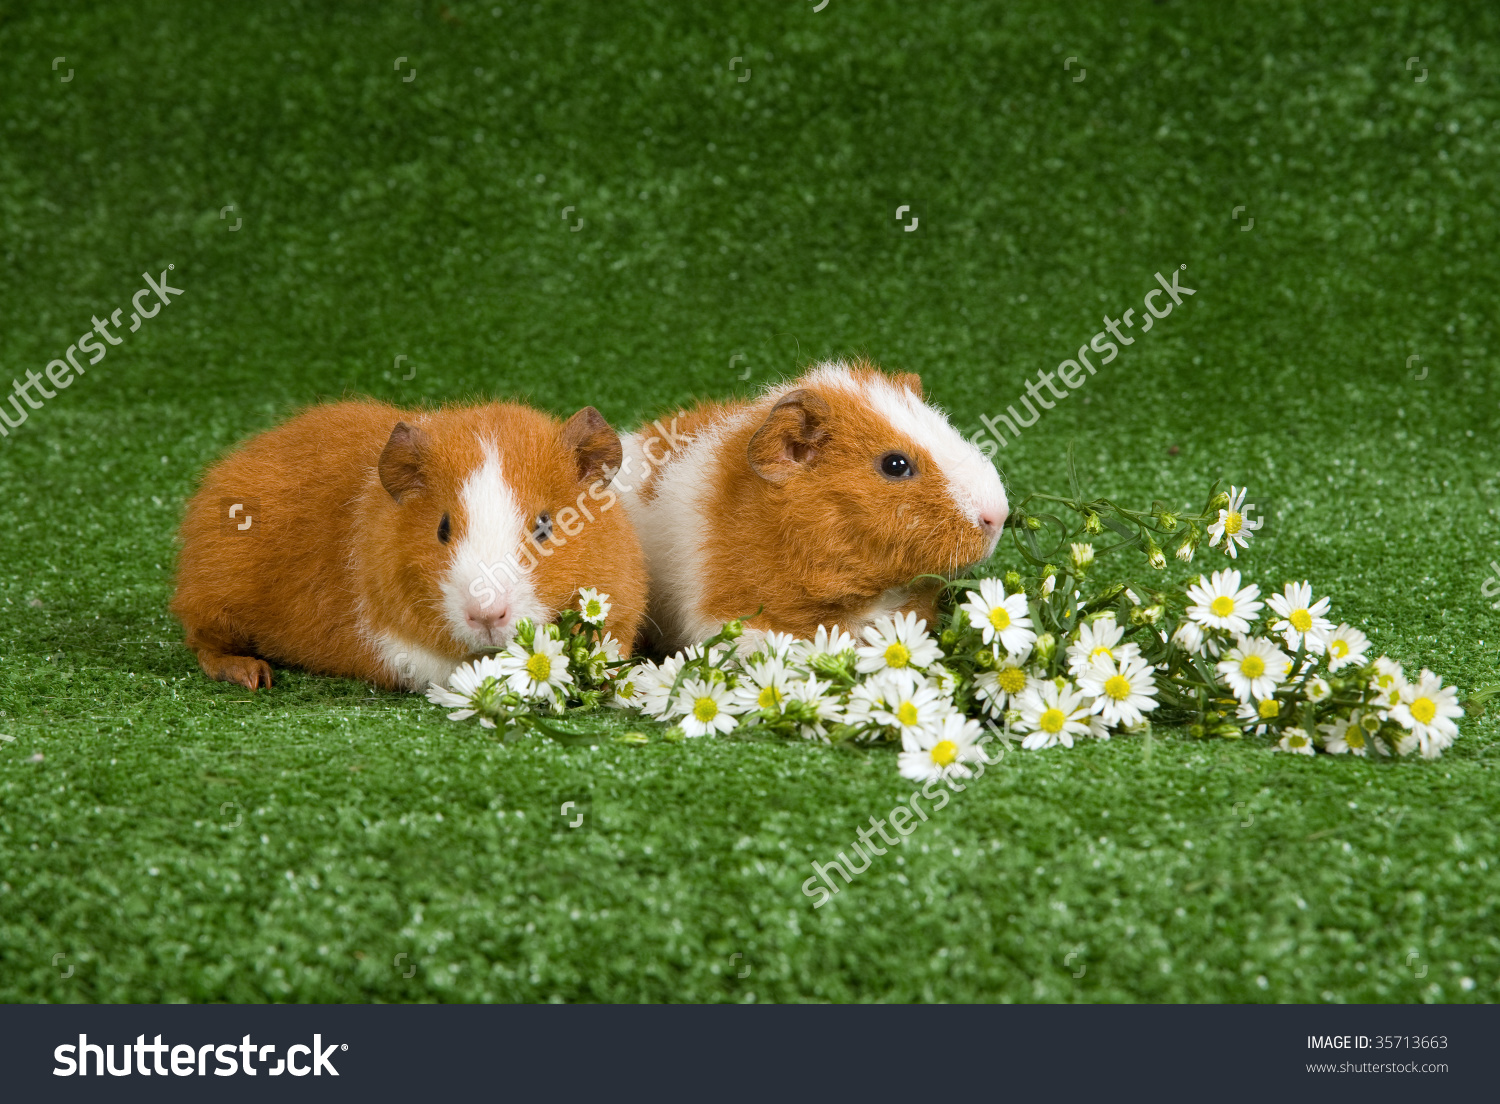 2 Cute Rex Guinea Pigs On Lawn, With White Daisies Flowers Stock.